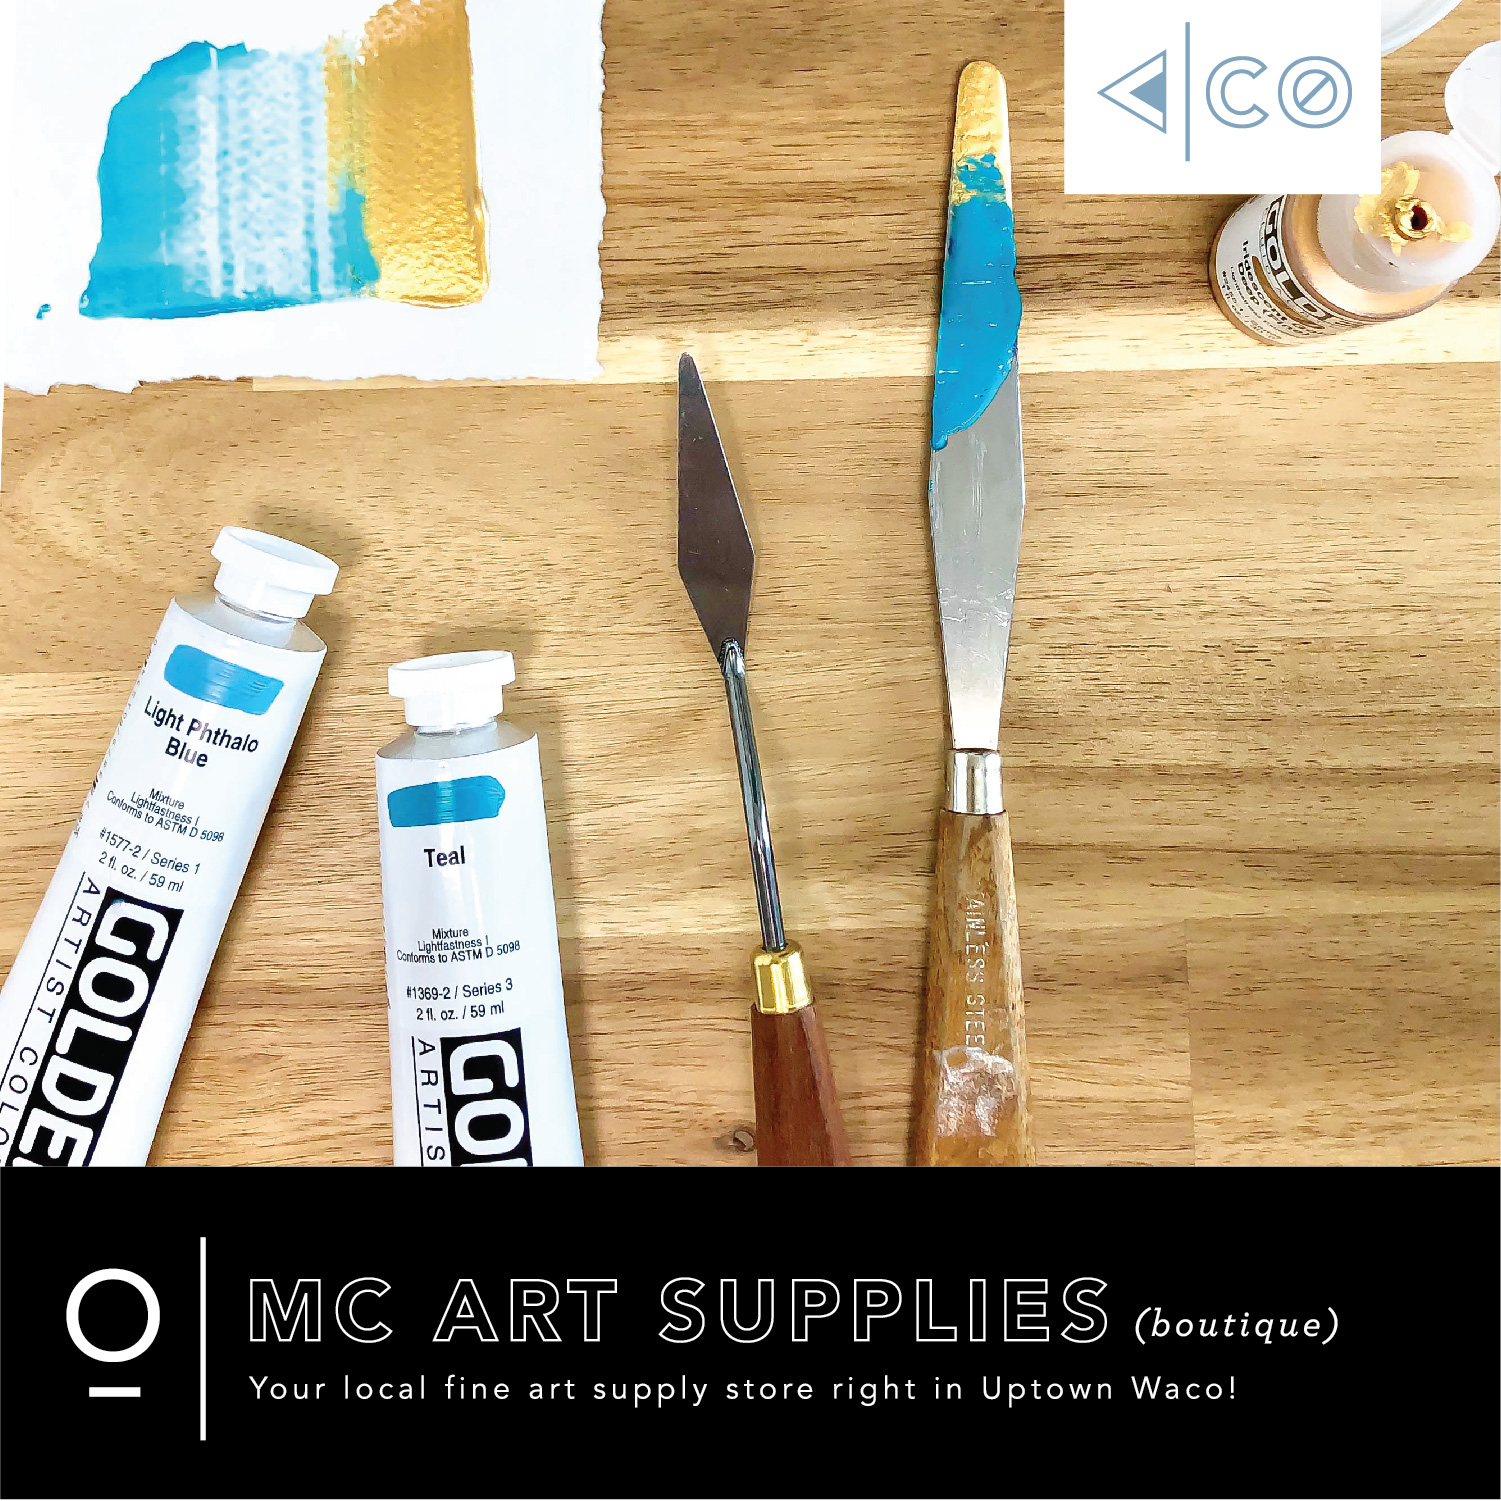 MC Art Supplies